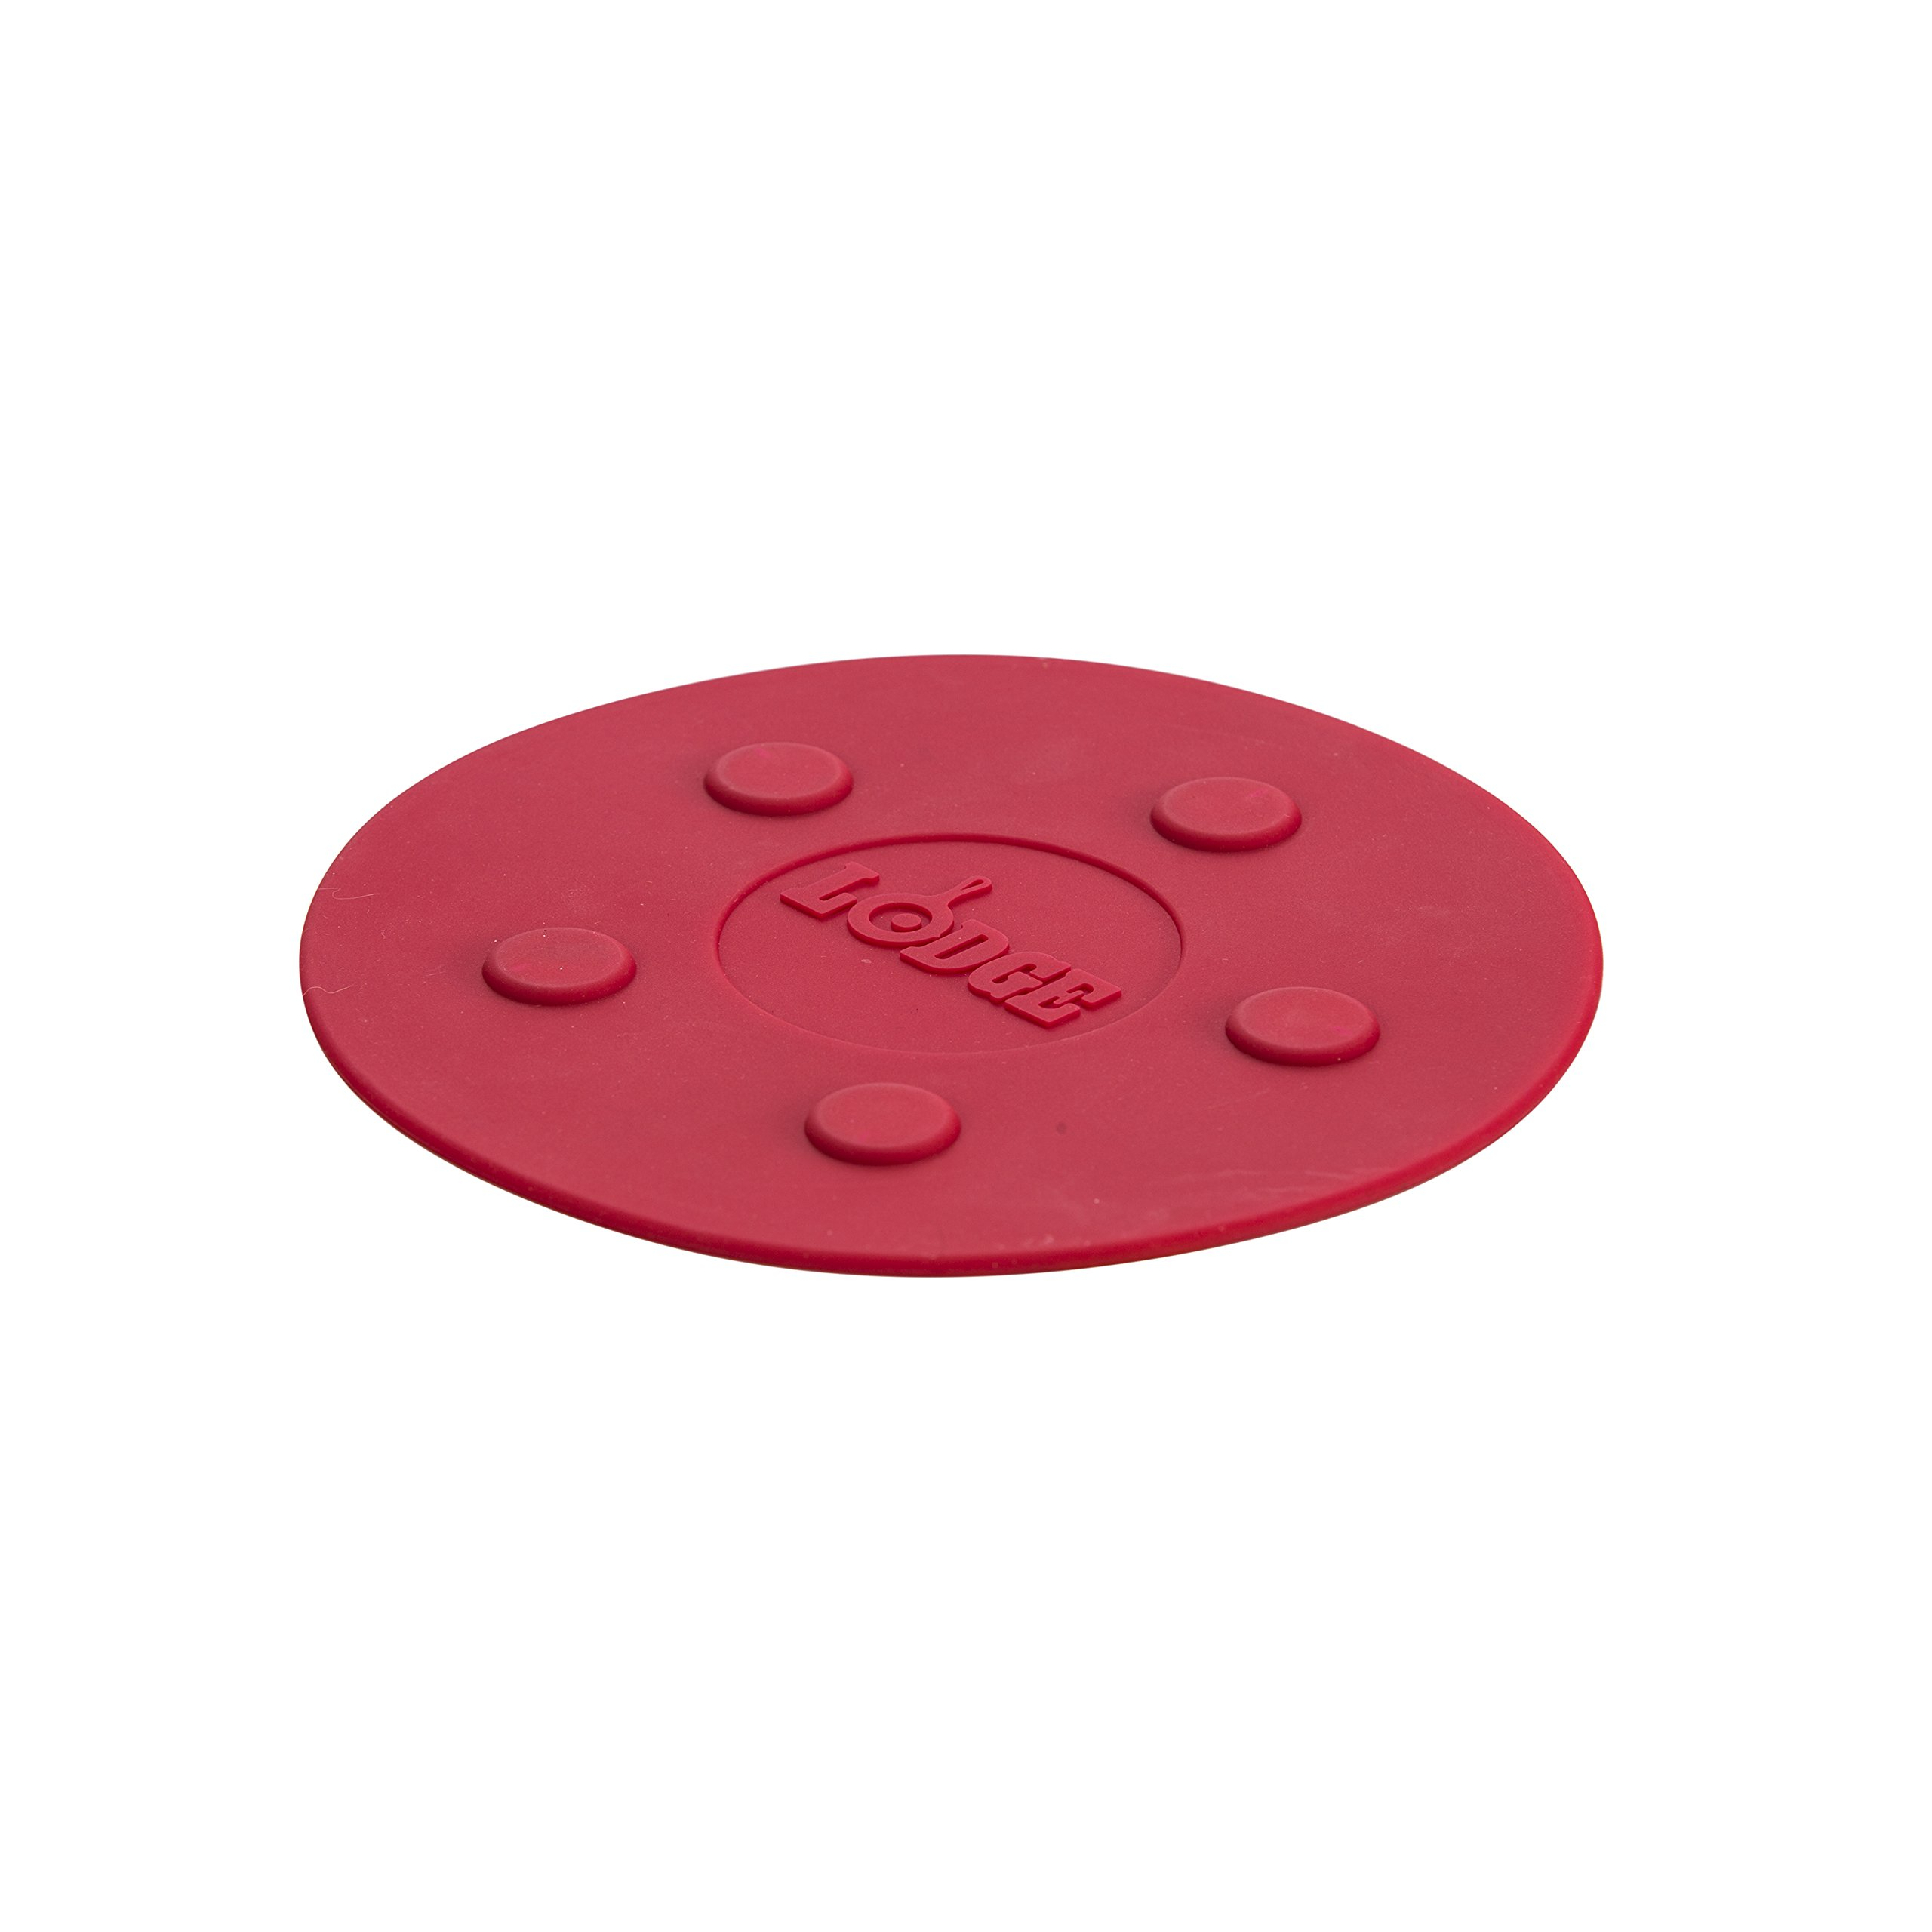 Lodge ASLMT41 Silicone Magnet Trivet, 8-inch, Red